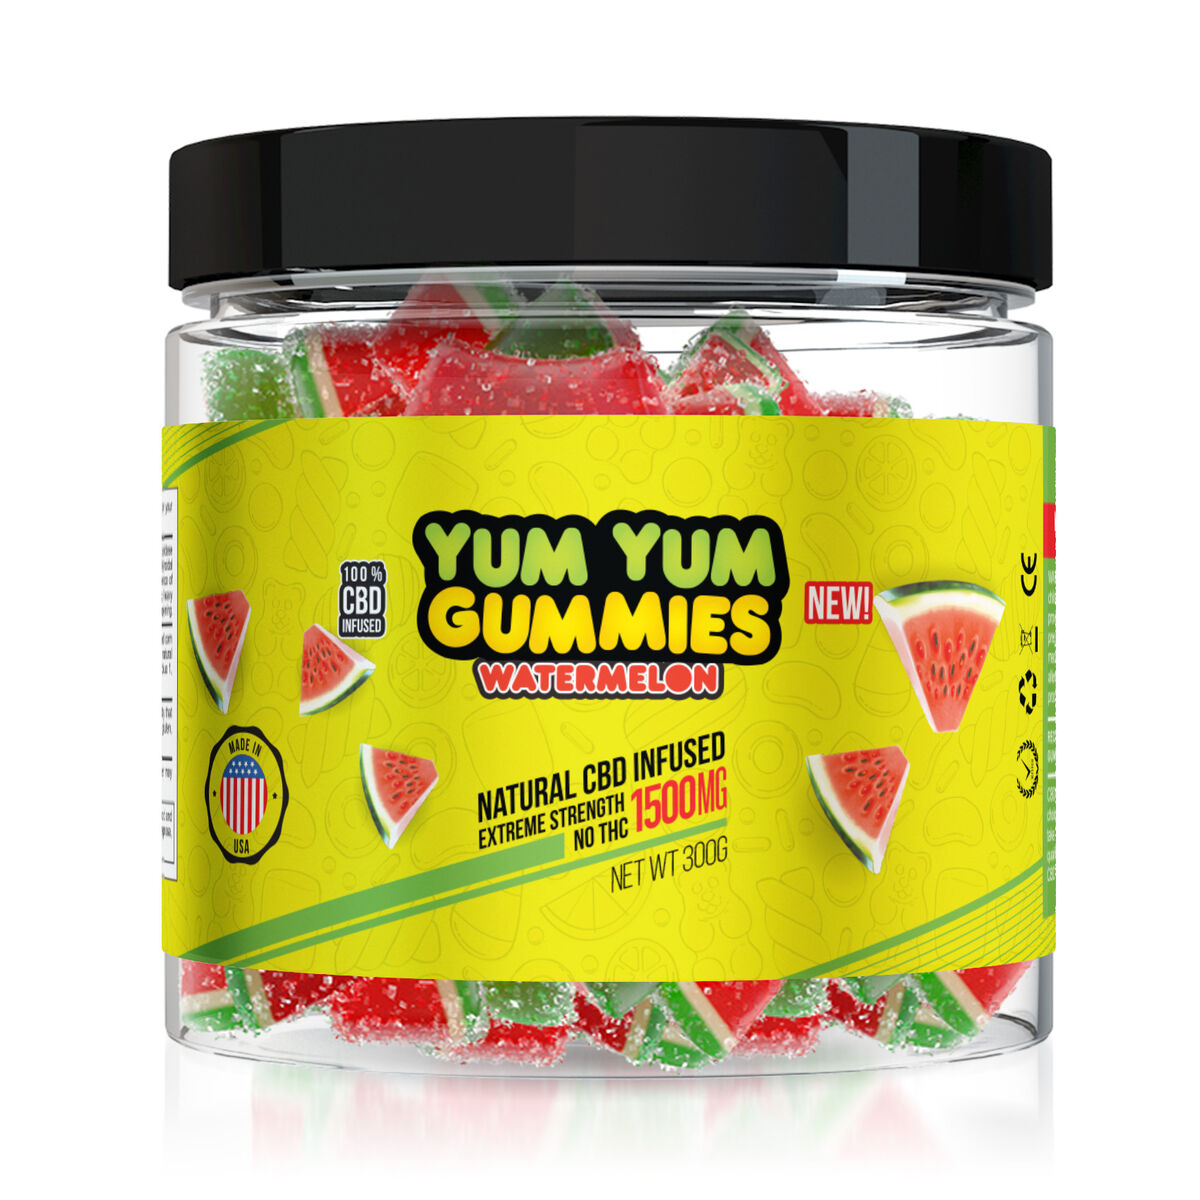 Yum Yum Gummies 1500mg - CBD Infused Watermelon Slices